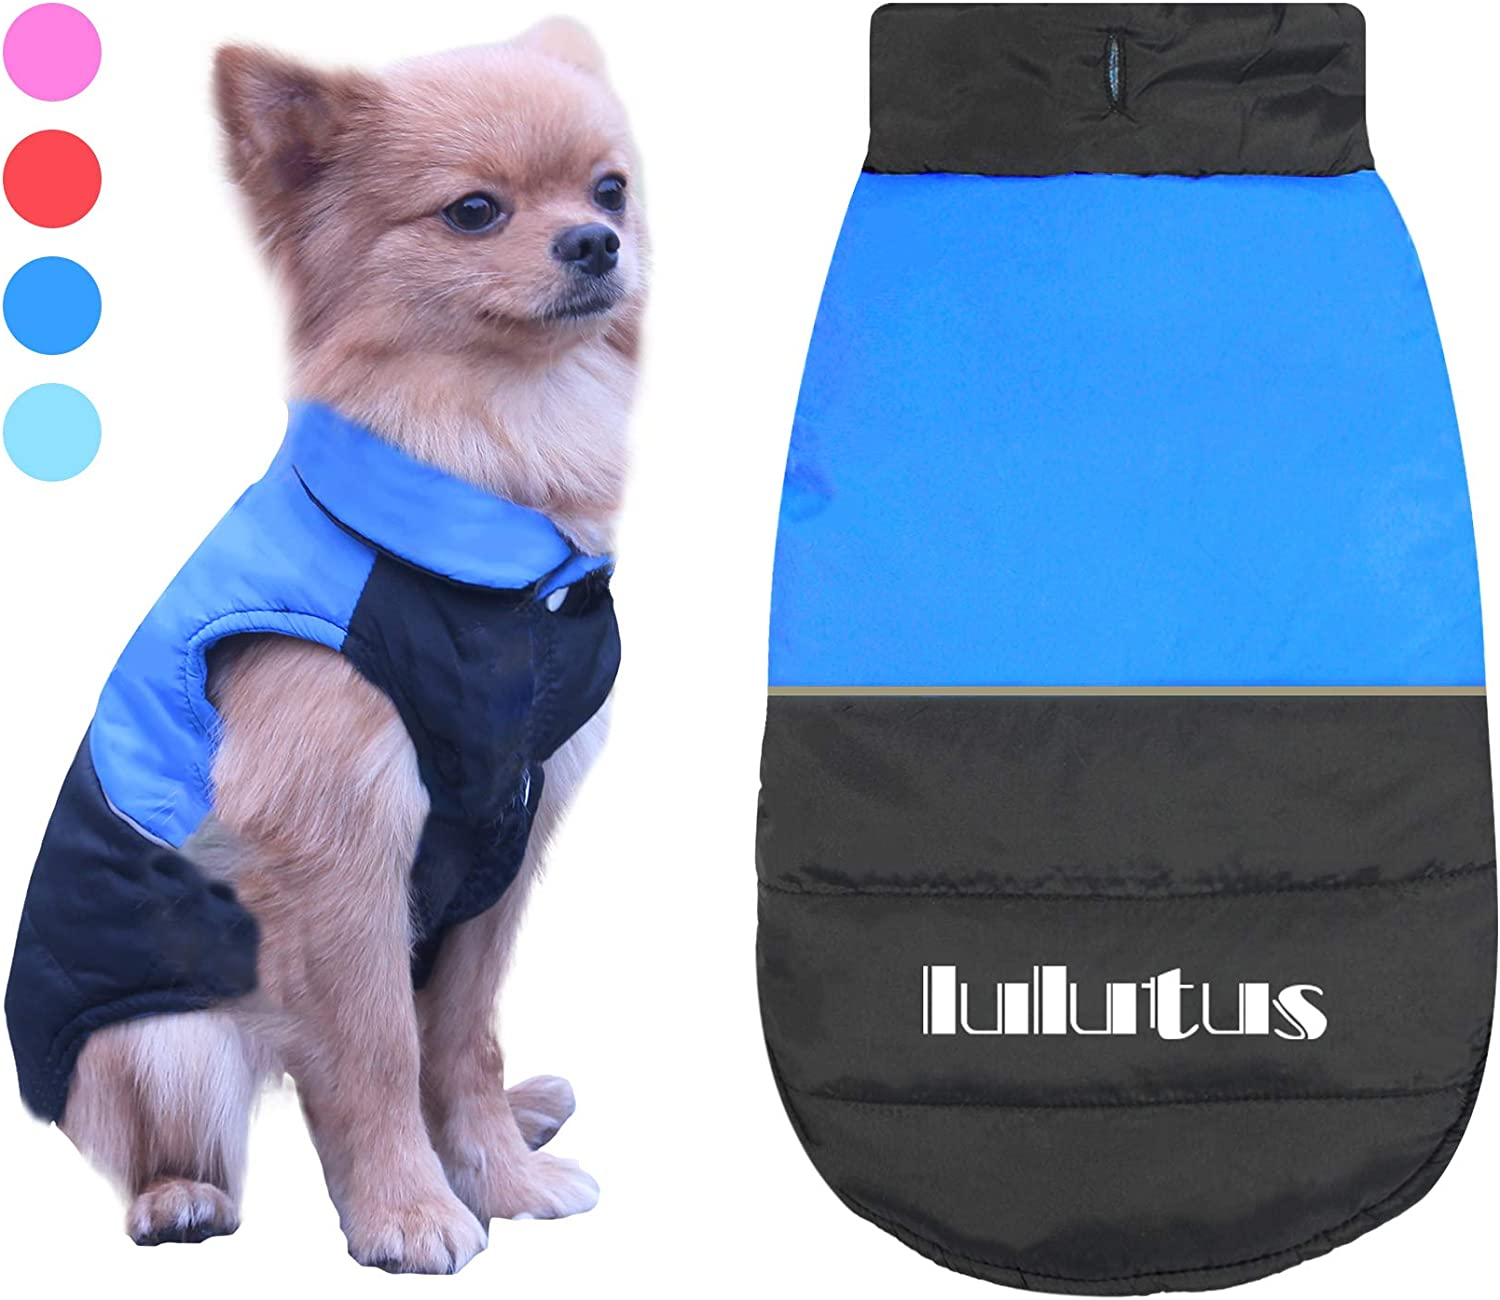 Dog Jackets Winter Waterproof Dog Coats for Cold Weather Clothes Puppy Vest Reversible Style Pets Apparel Dog Sweaters,bluee M